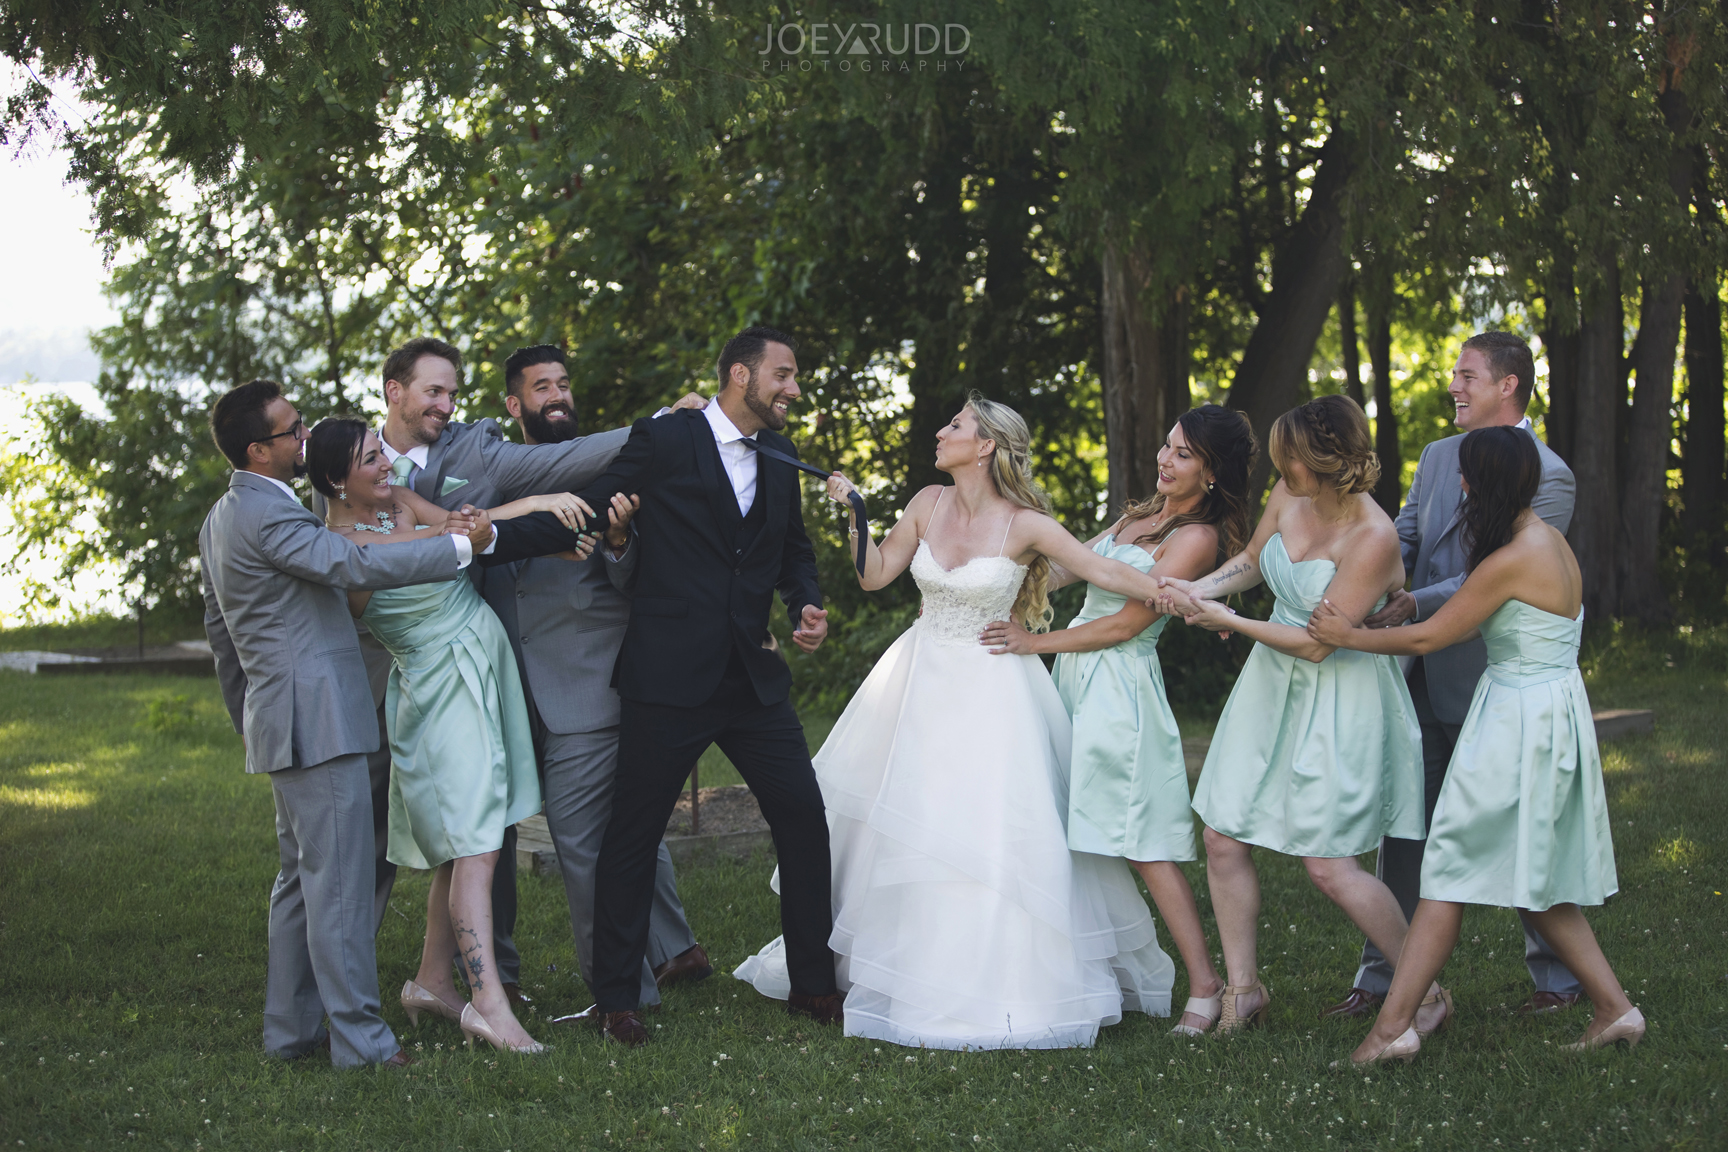 Calabogie Wedding at Barnet Park by Ottawa Wedding Photographer Joey Rudd Photography Fun and Creative Wedding Party Photo